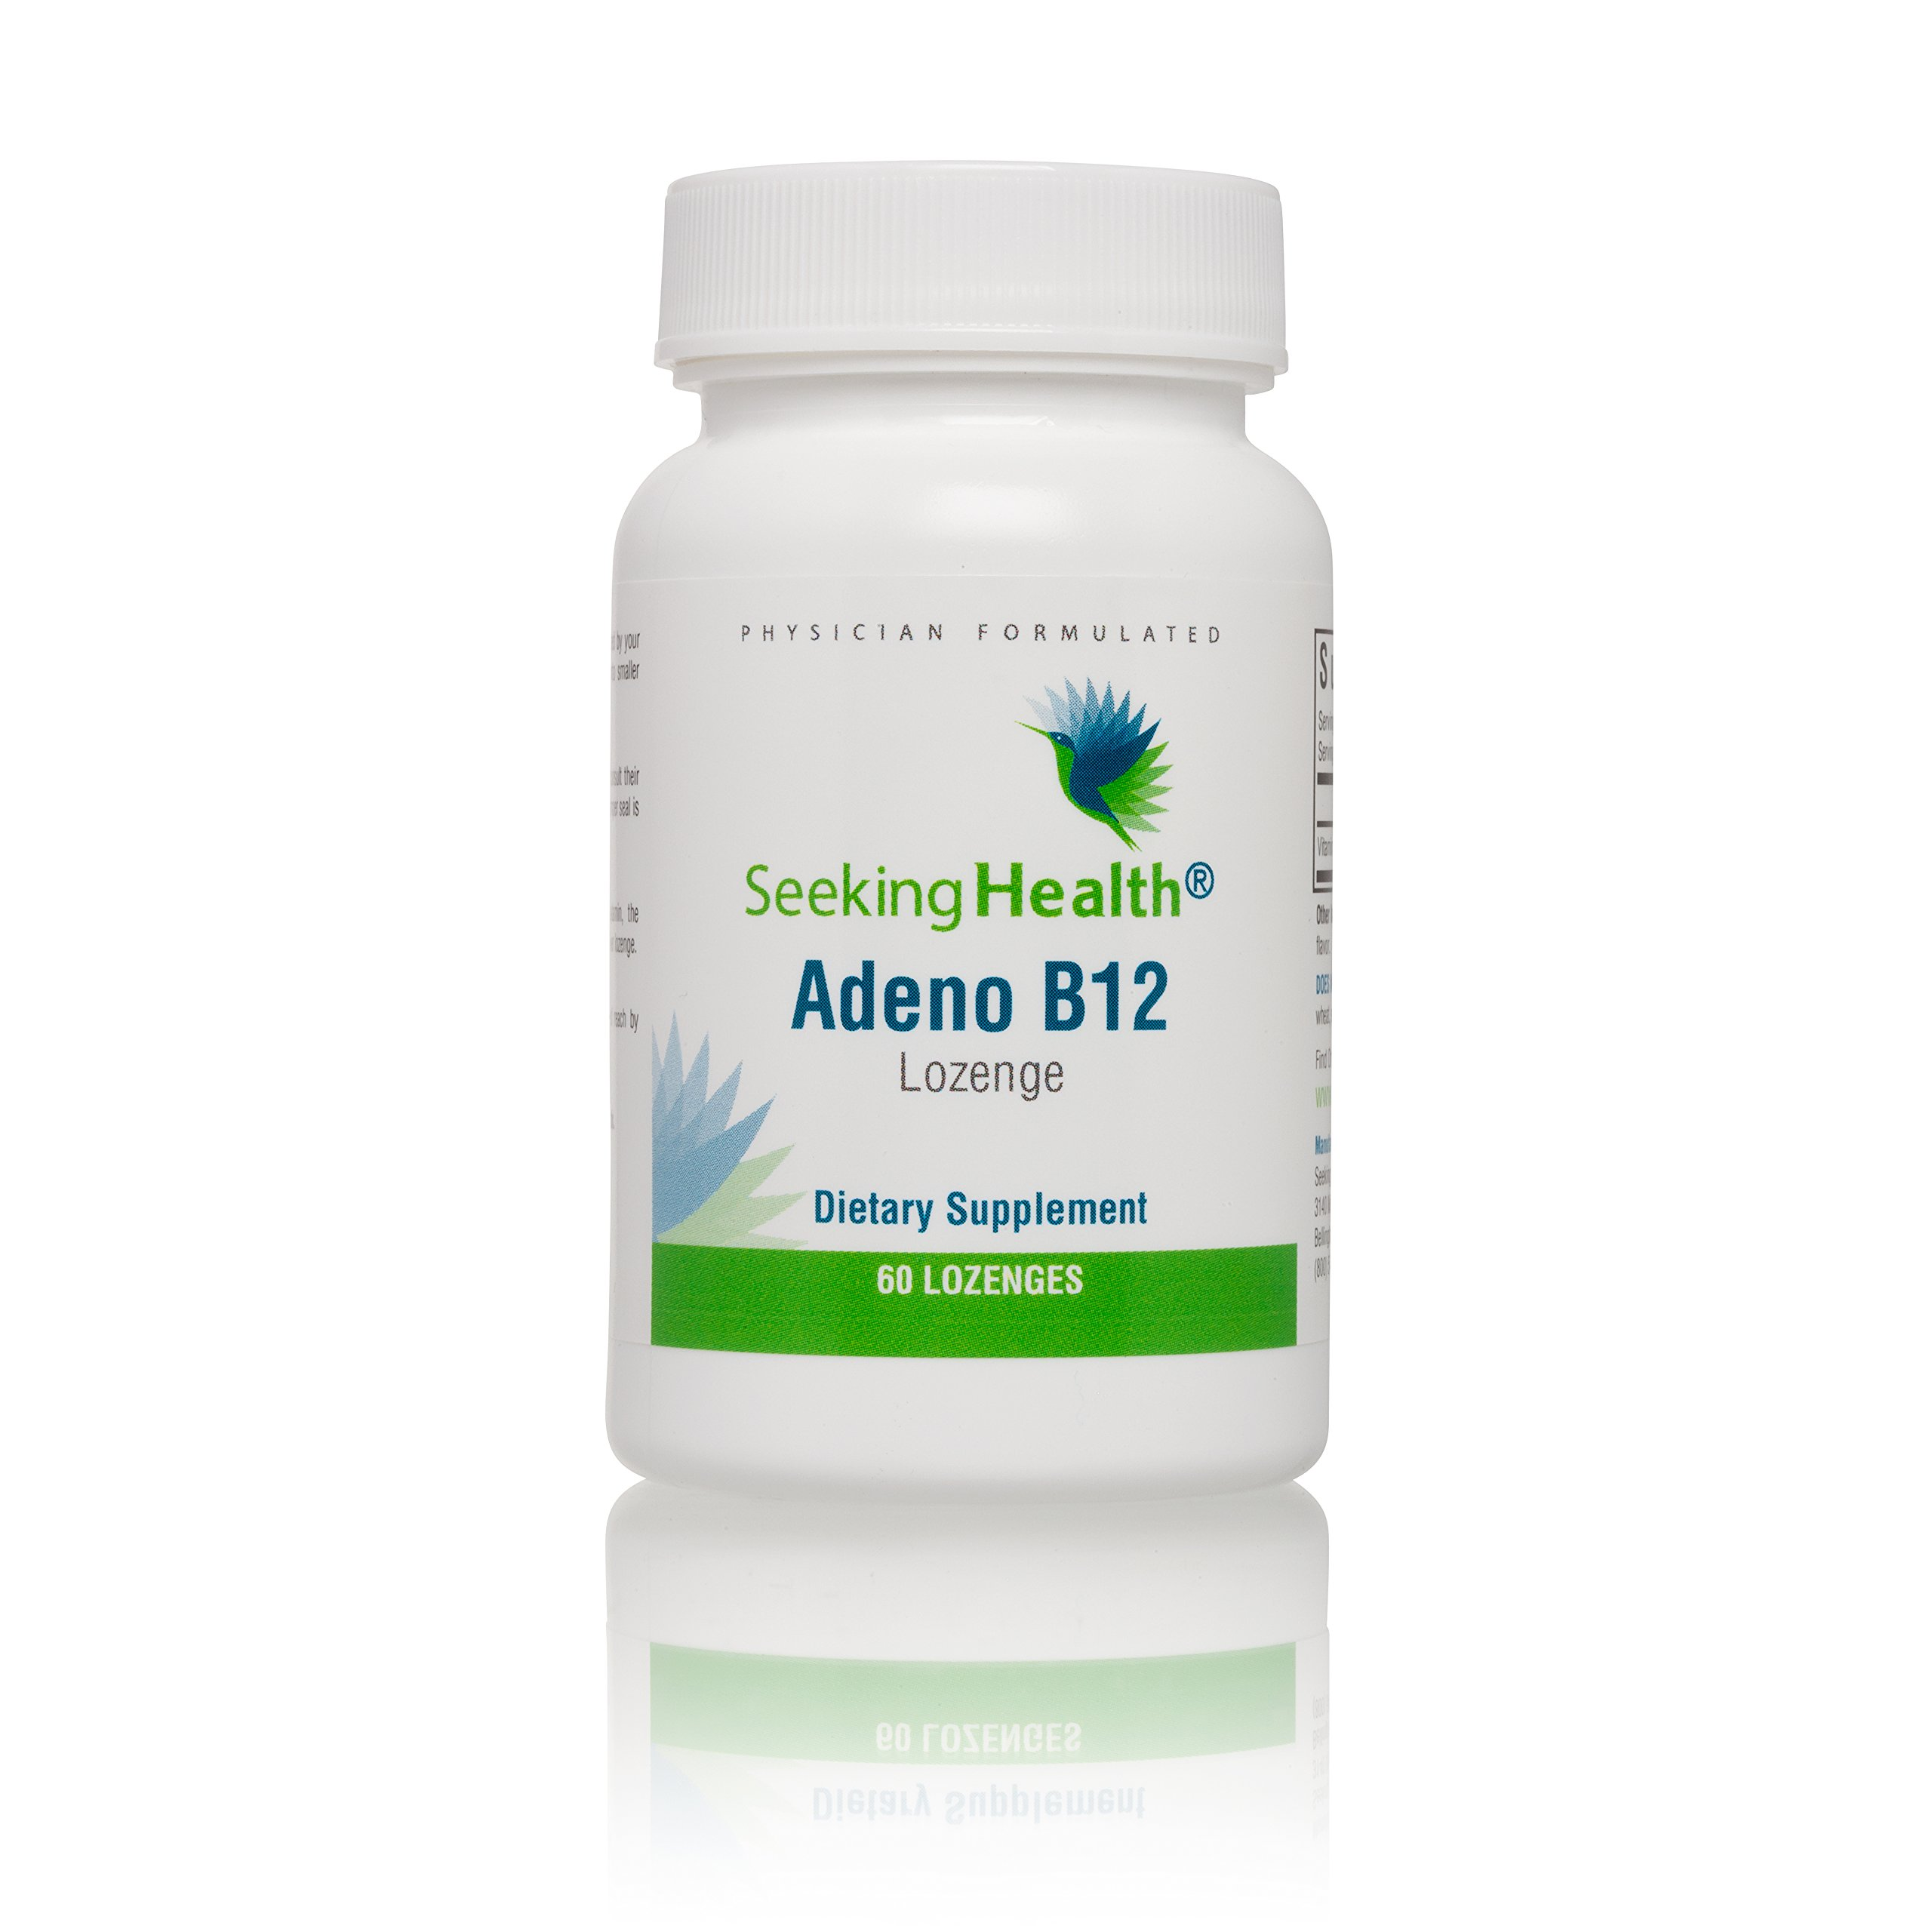 Adeno B12 Lozenge | 3,000 mcg Adenosylcobalamin | Mitochondrial Form of Vitamin B12 | 60 Lozenges | Free of Common Allergens and Magnesium Stearate | Seeking Health